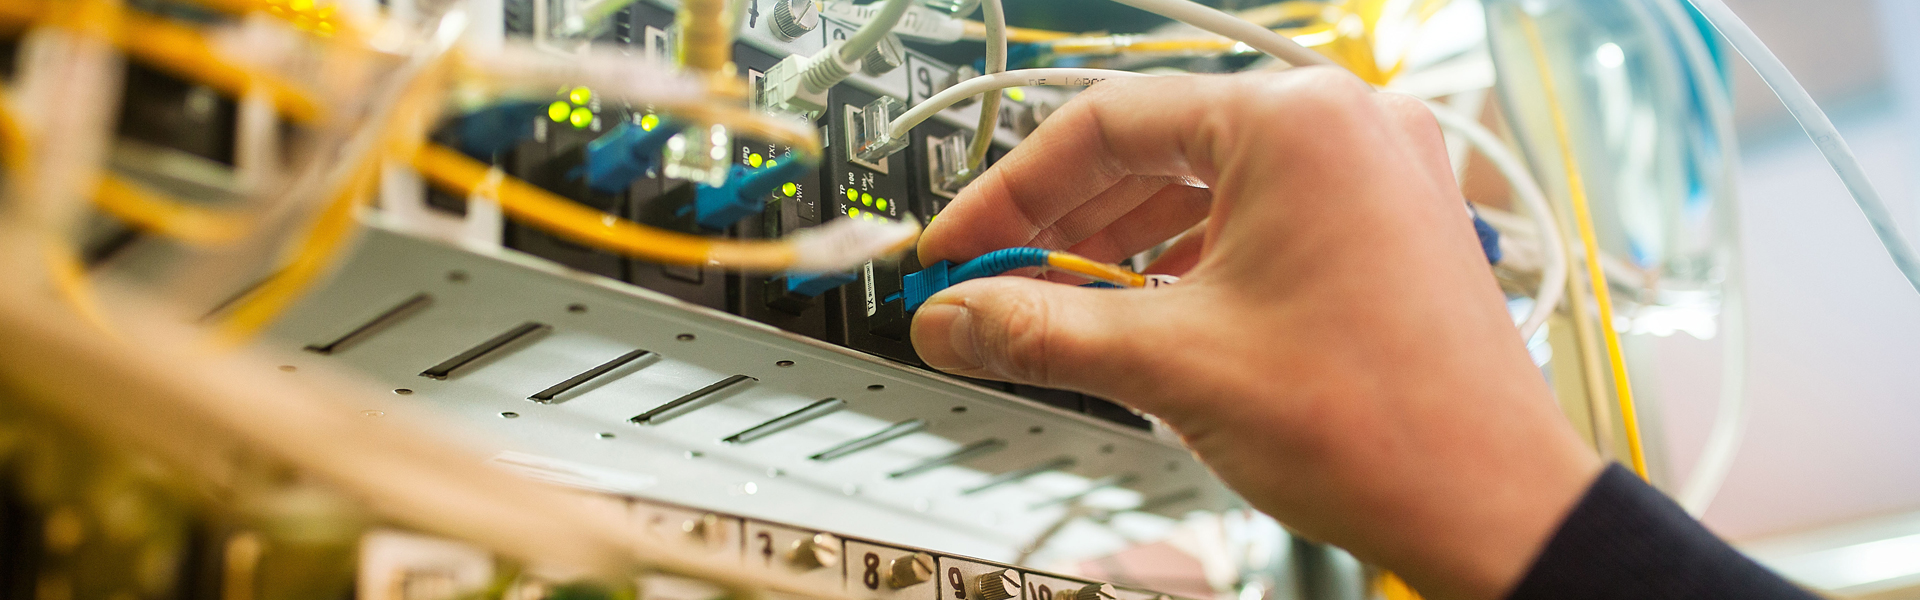 Fast Internet Services